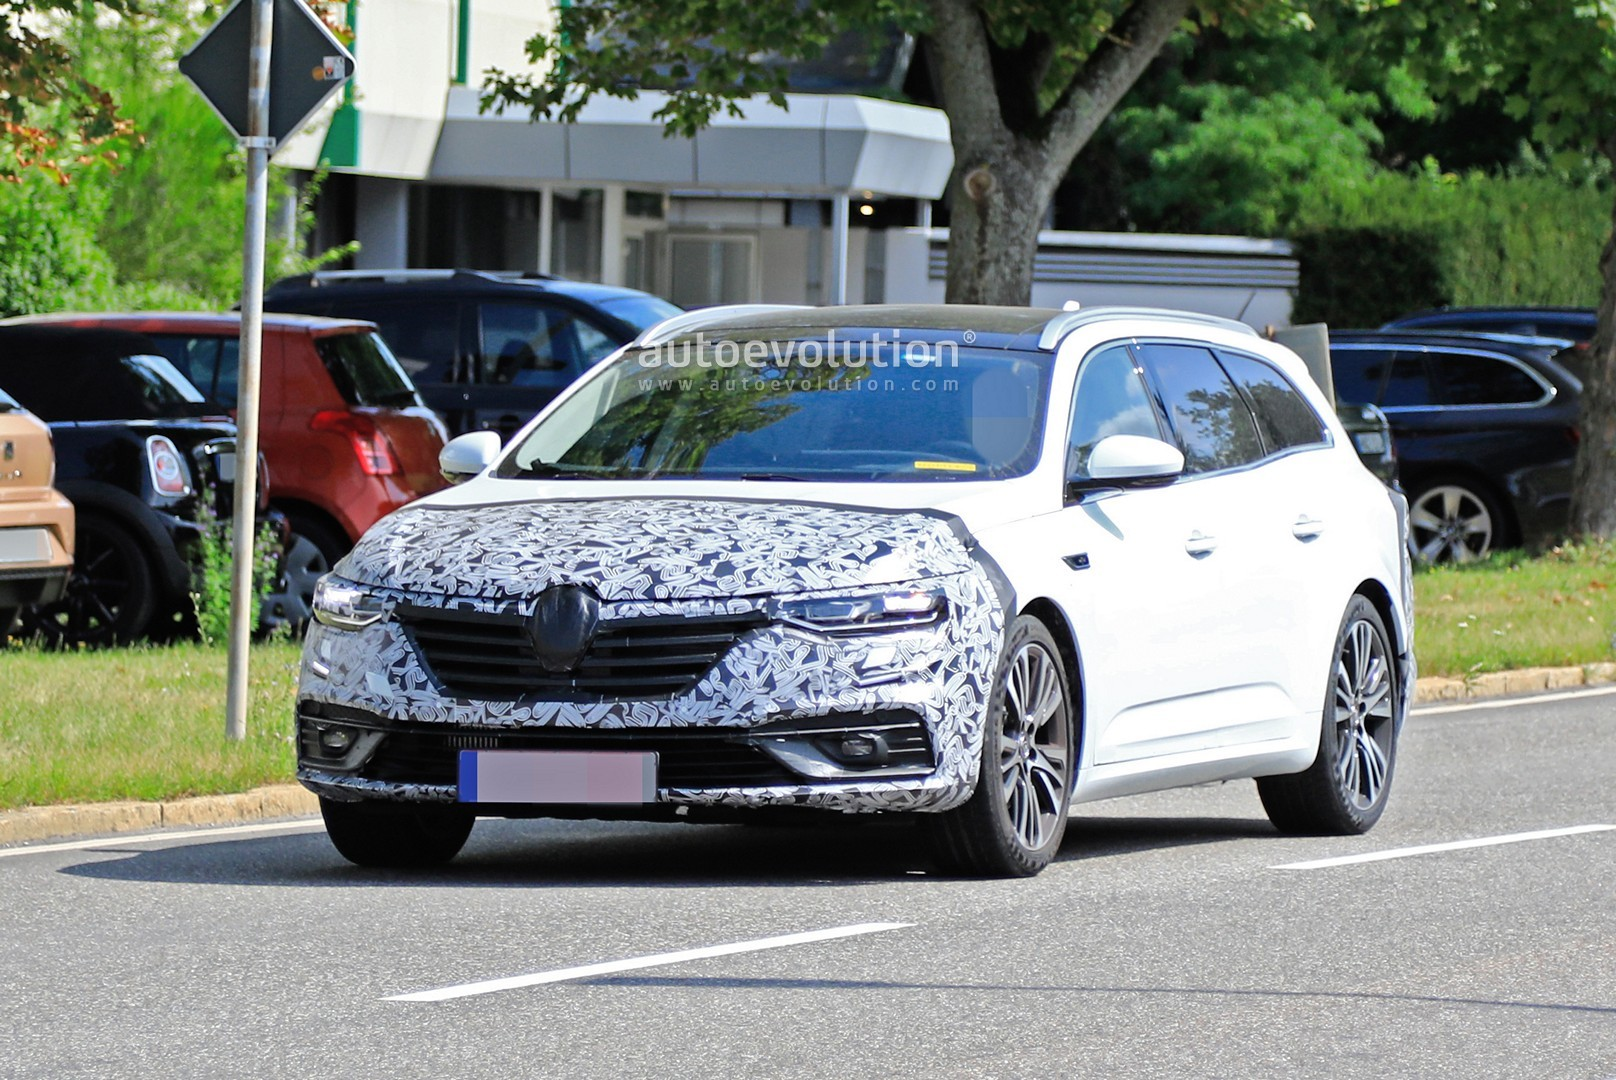 2020 - [Renault] Talisman restylée - Page 8 2021-renault-talisman-wagon-spied-for-the-first-time-with-facelift_1